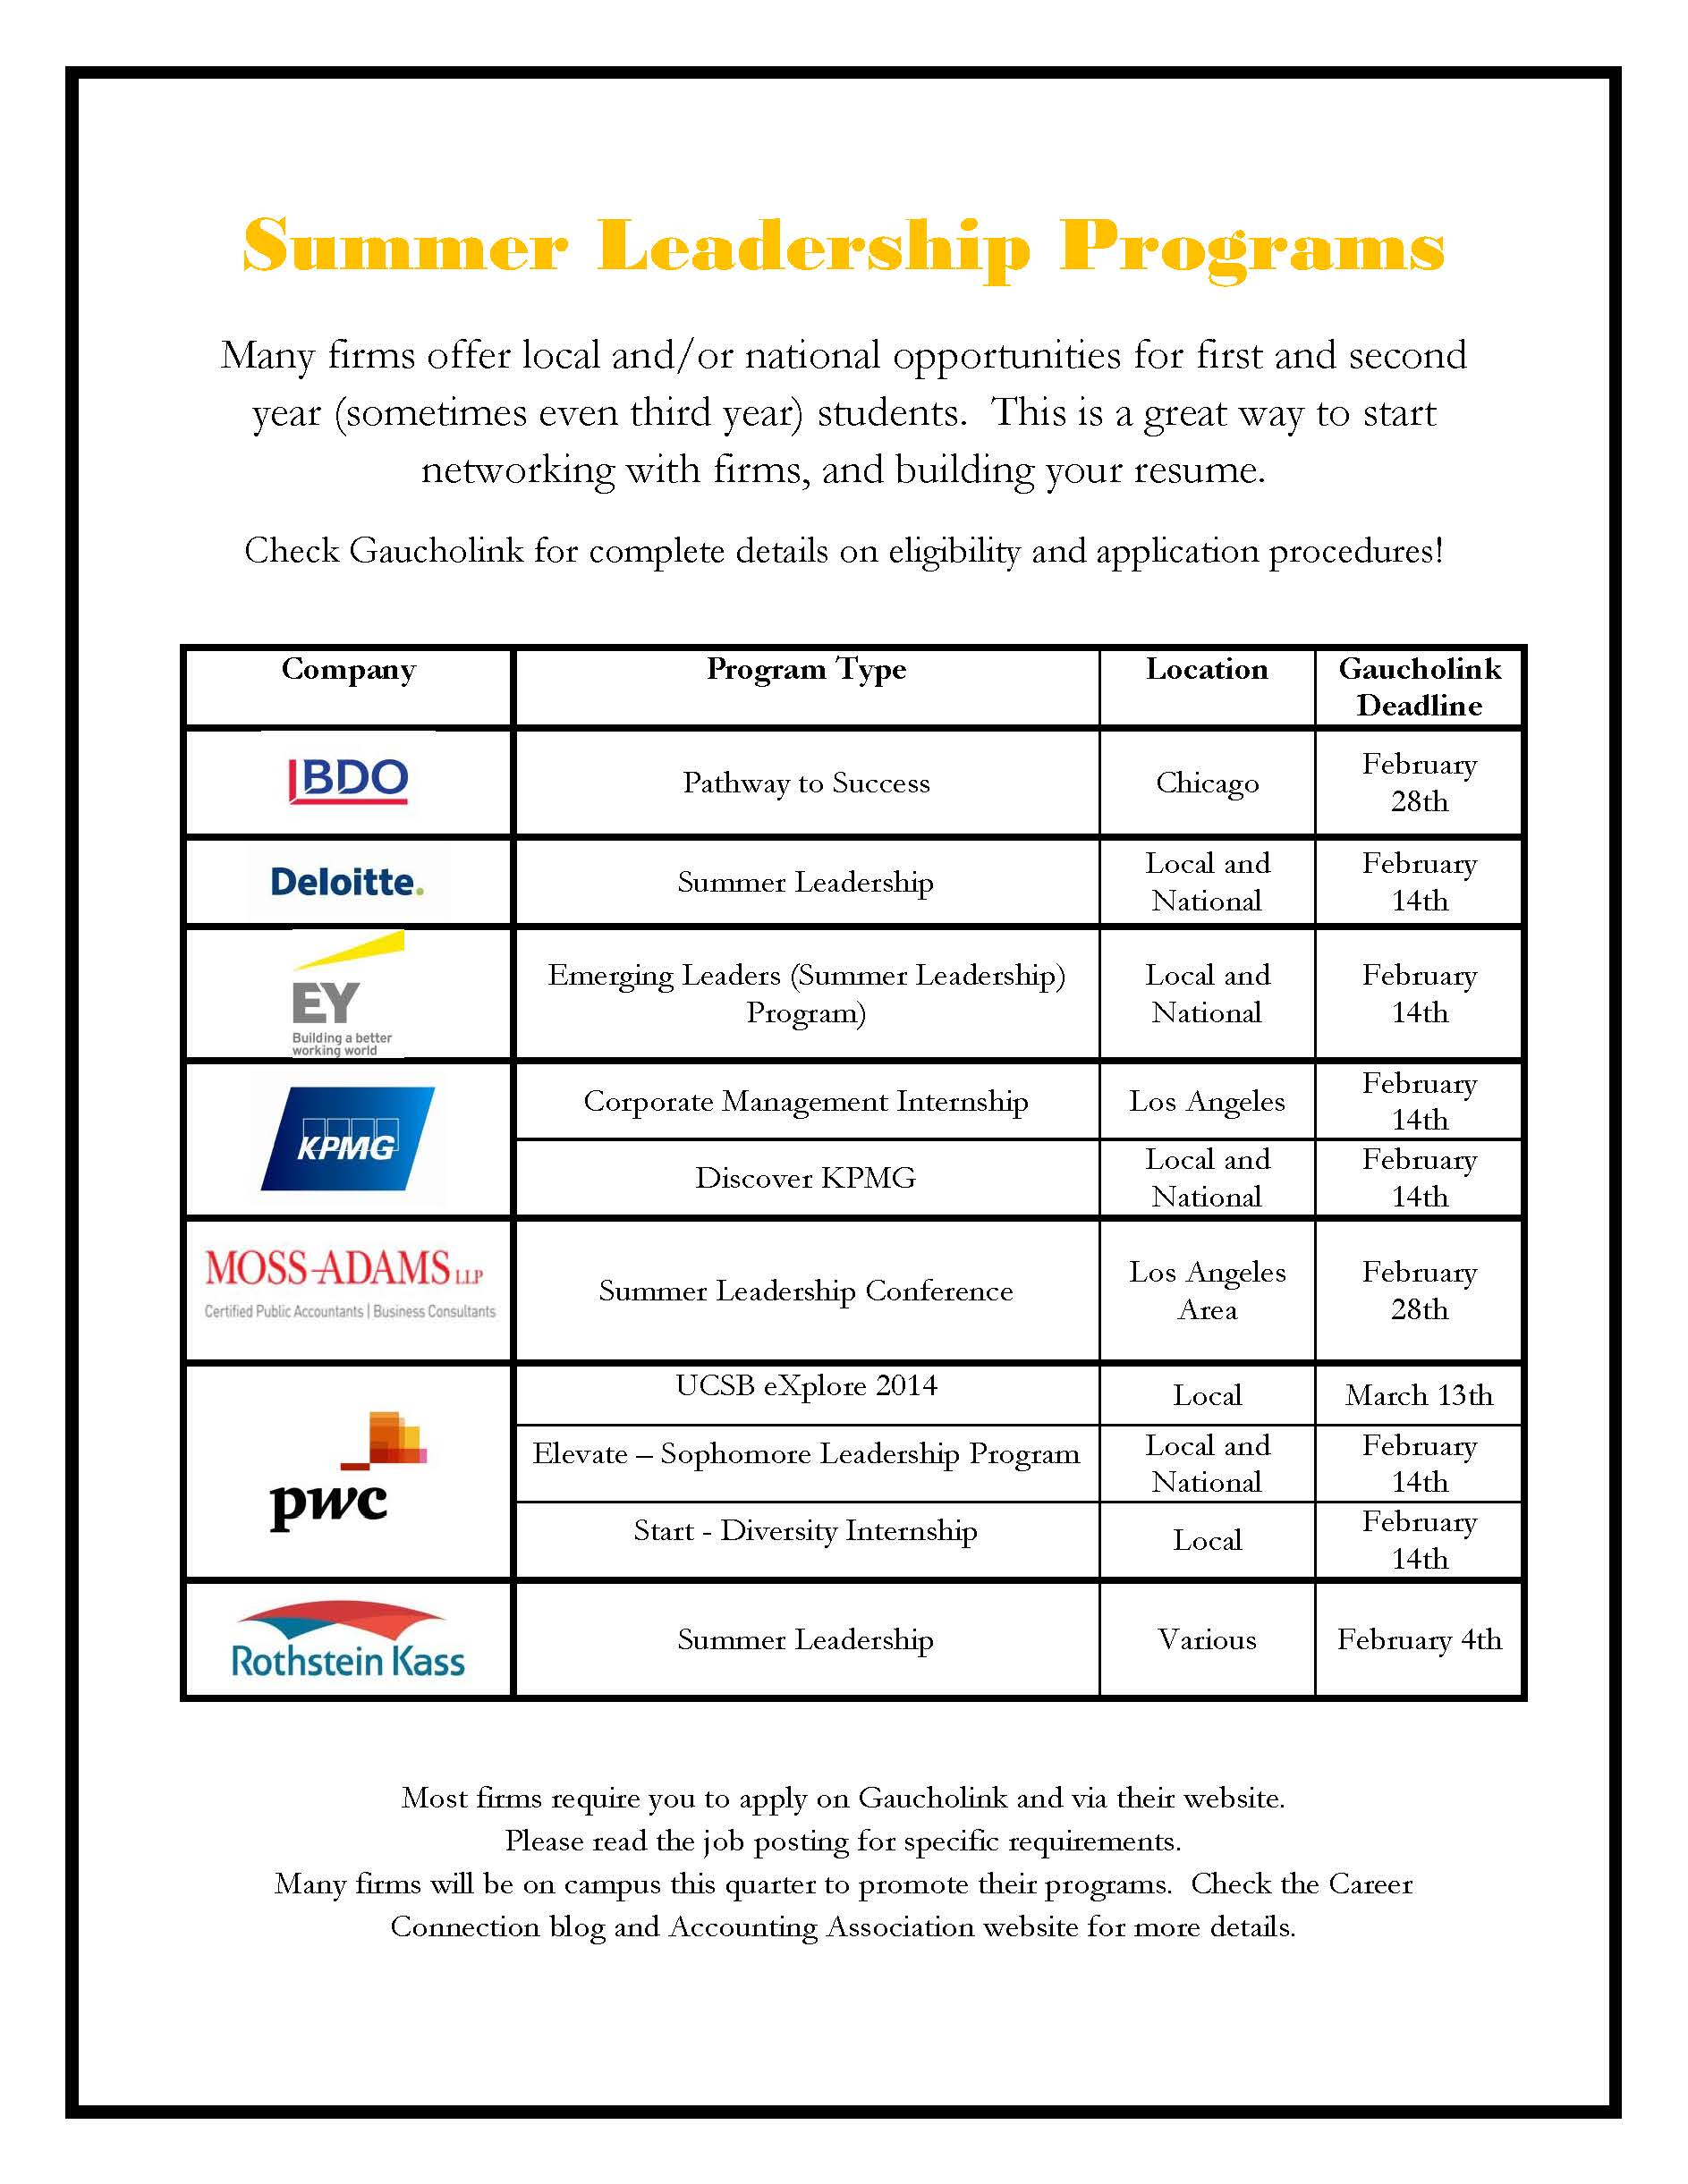 Summer Leadership Deadlines Career Connection